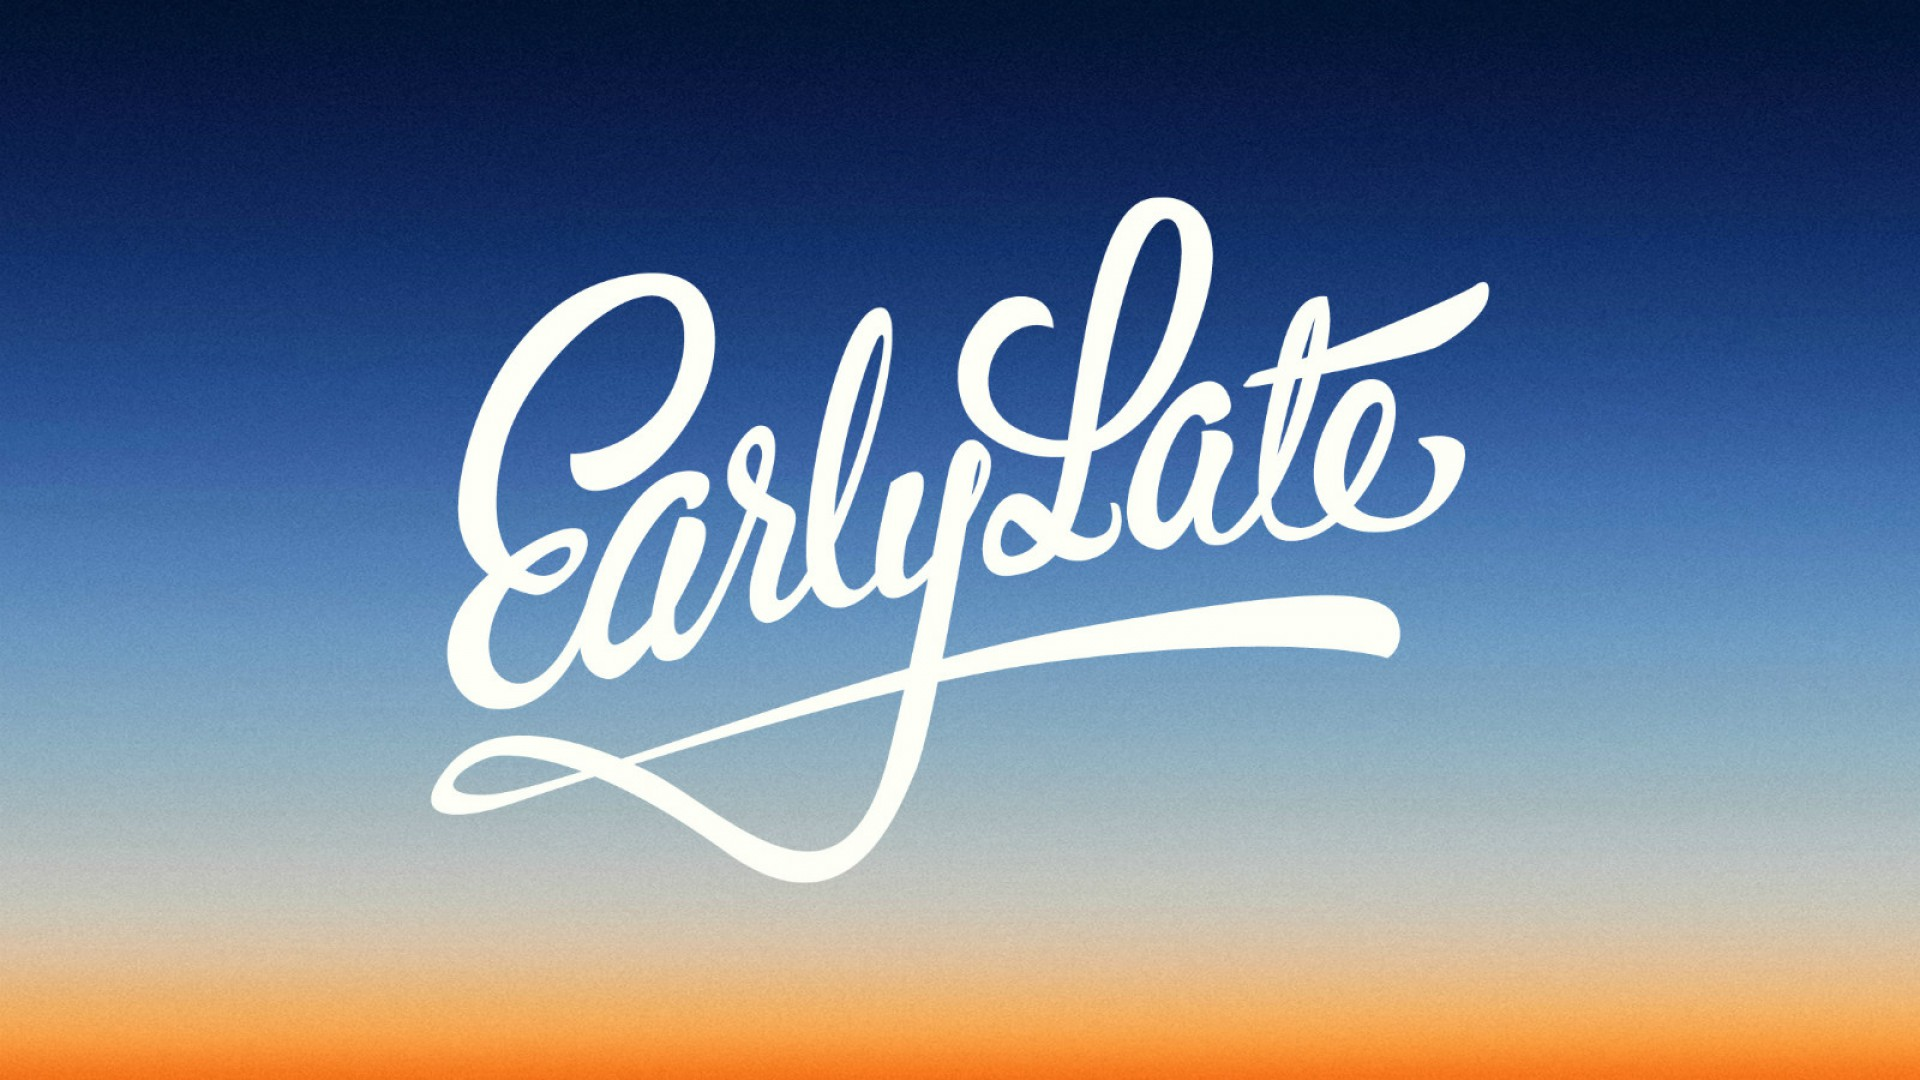 Mr. Leenknecht's selected logo's - EarlyLate sunset miami vice